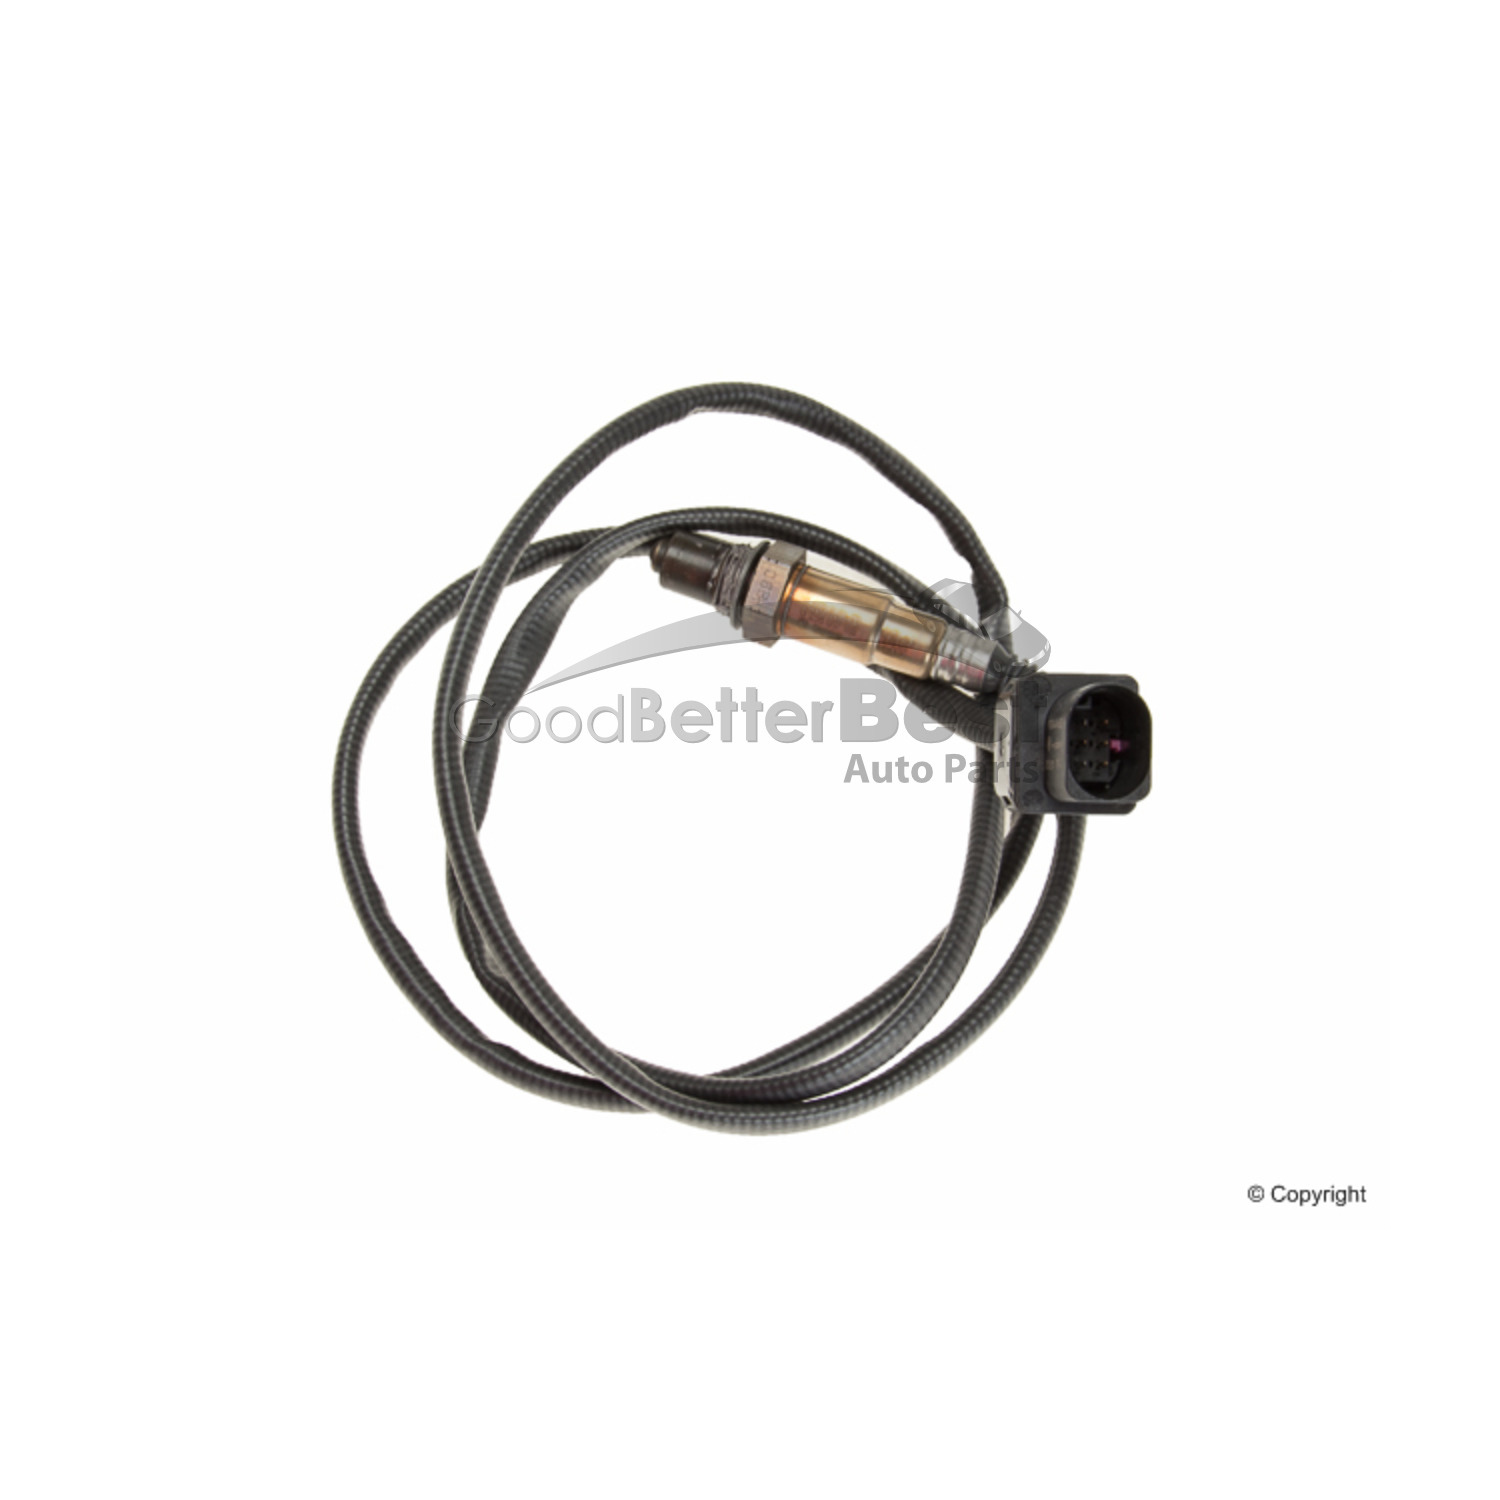 One New Bosch Oxygen Sensor Front For Bmw X5